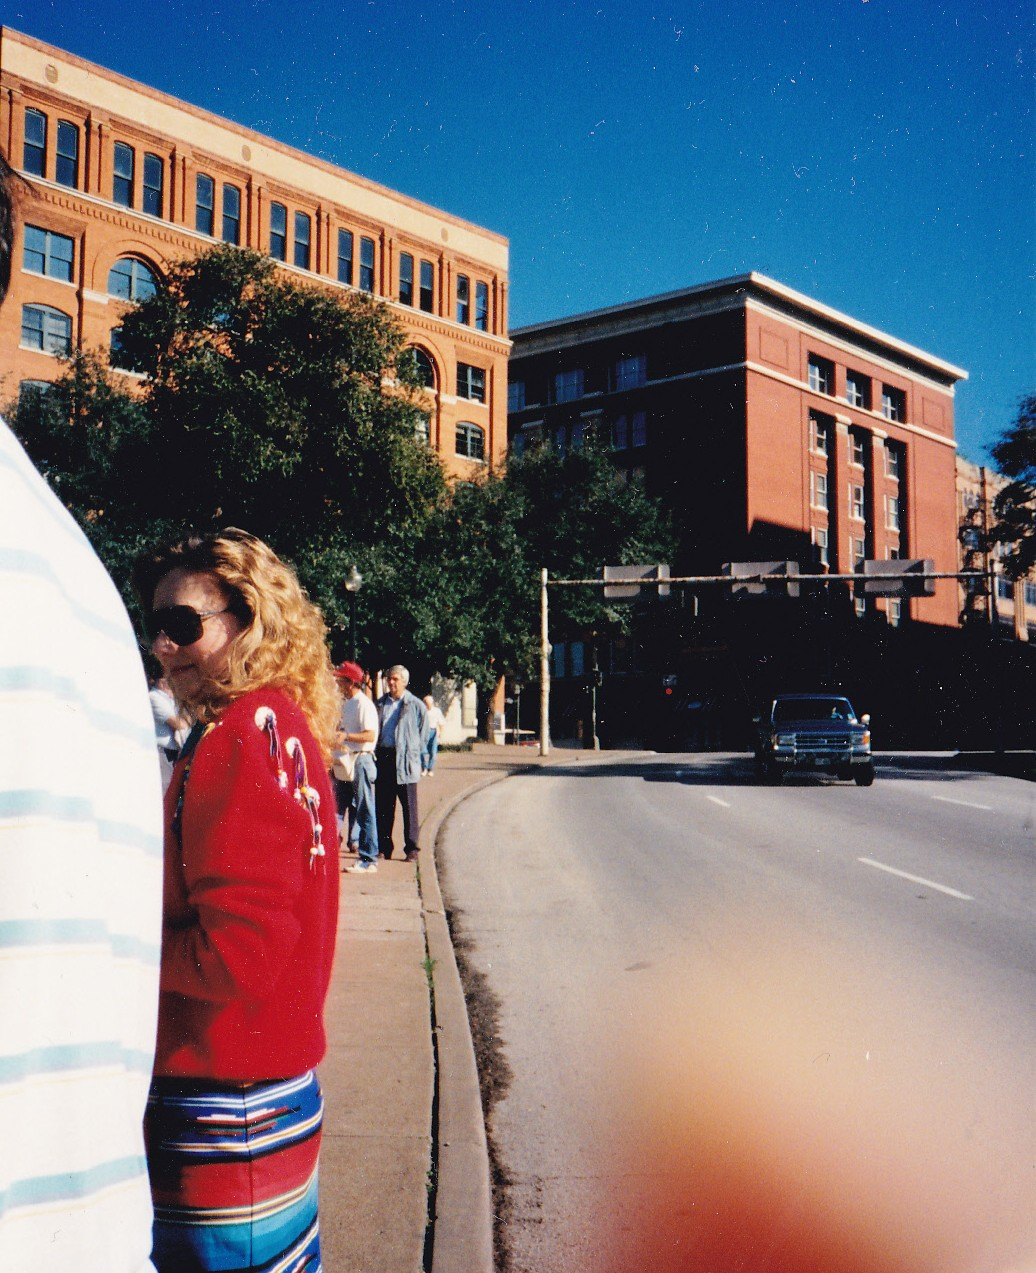 Book Depository building Dealey Plaza Dallas Texas Oswald's perch